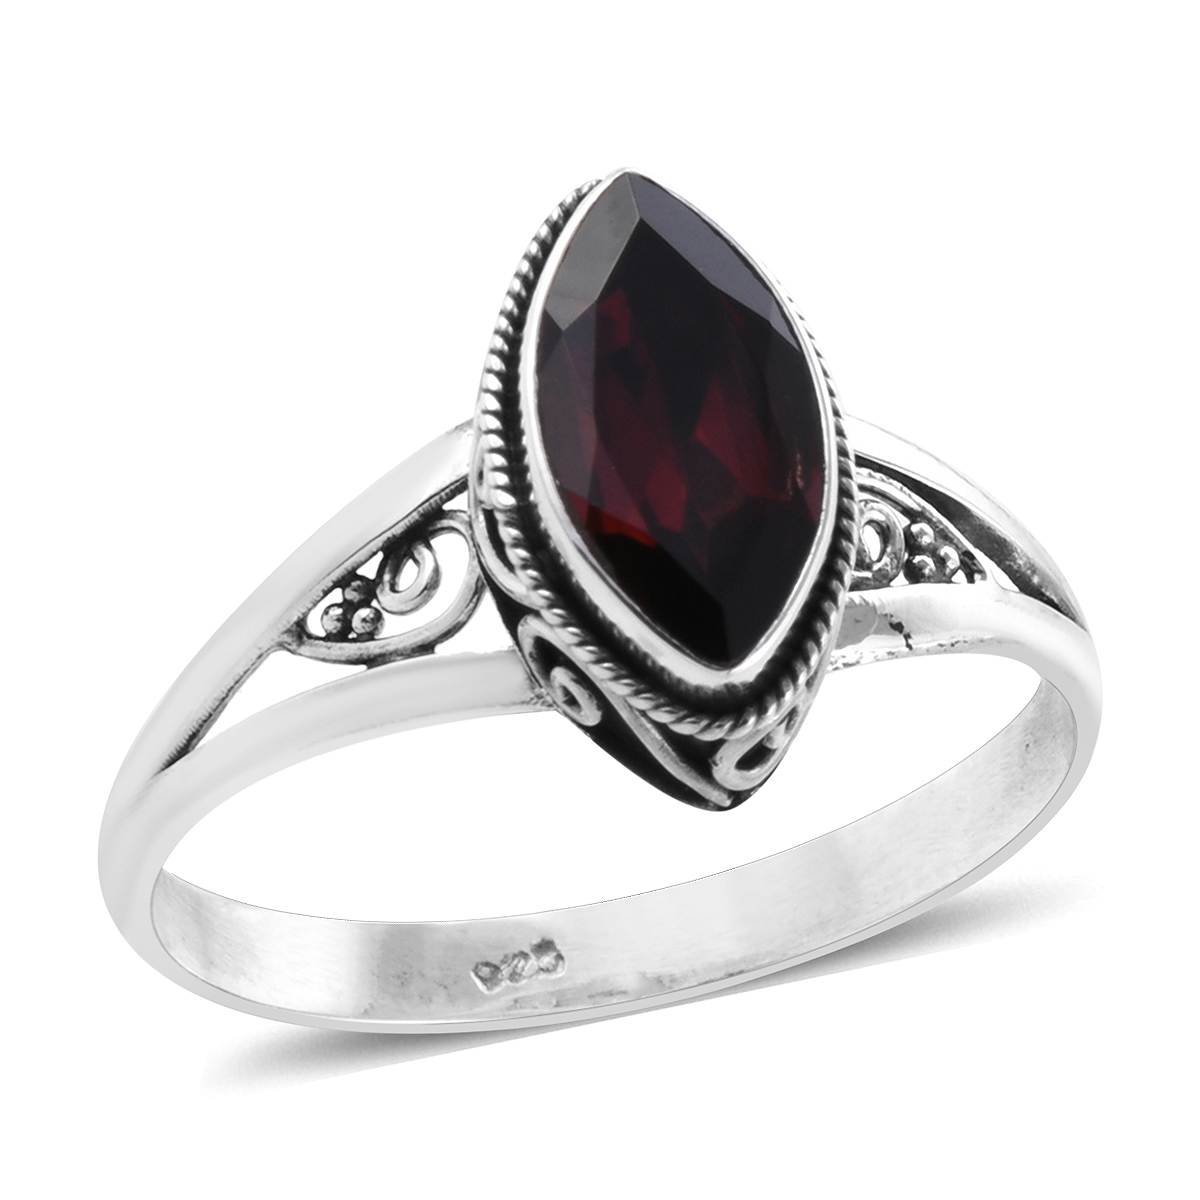 Memorial Day Mozambique Garnet Ring in Sterling Silver (Size 10.0) 1.98 ctw